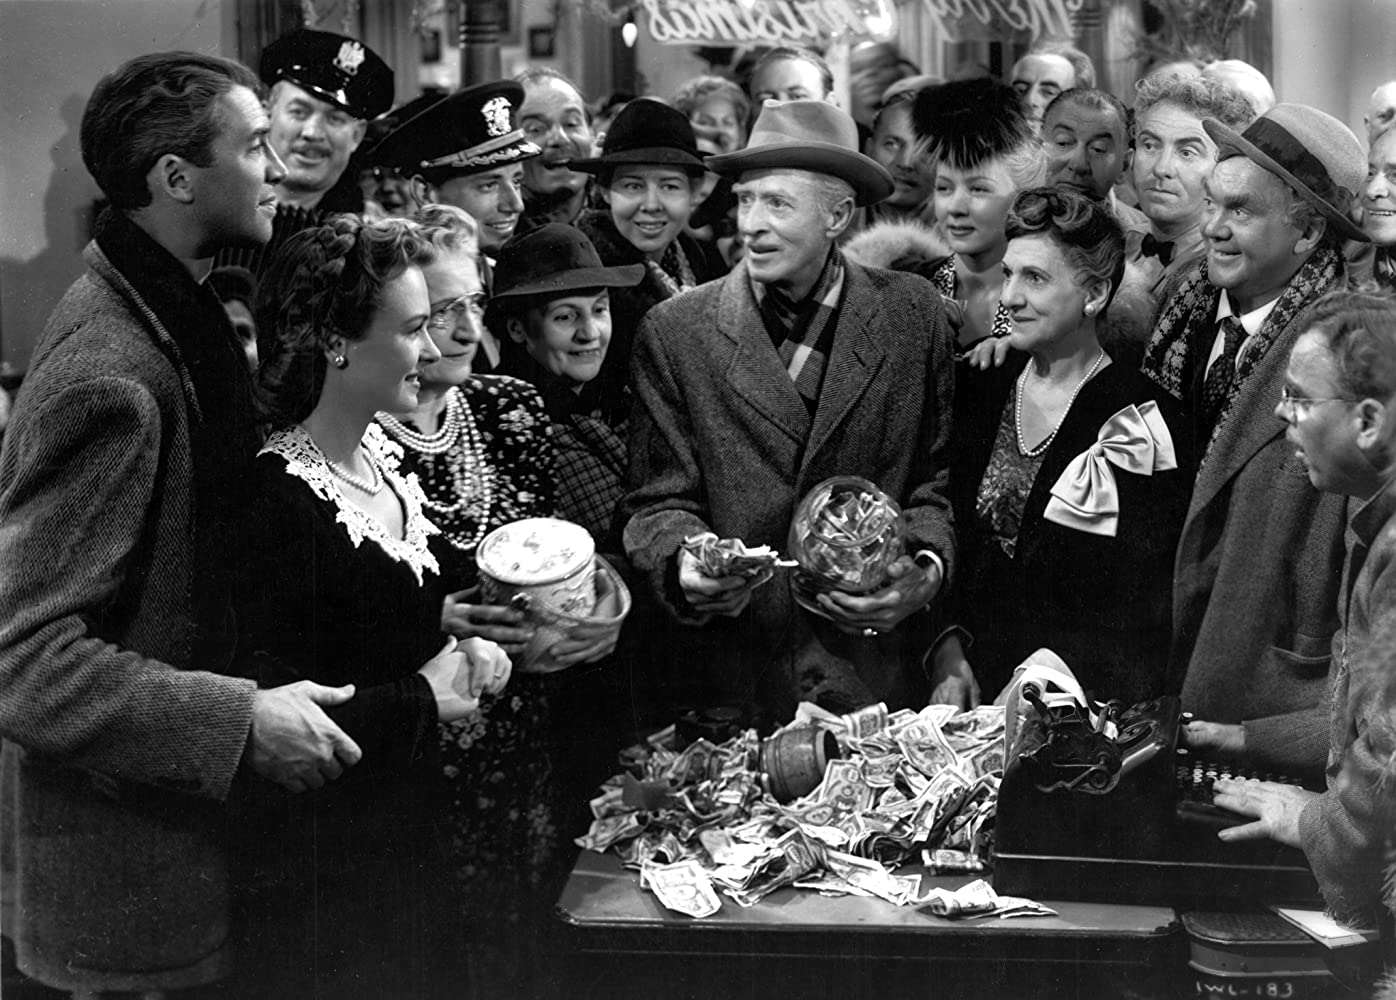 James Stewart, Ward Bond, Donna Reed, Gloria Grahame, Beulah Bondi, Frank Faylen, Todd Karns, Thomas Mitchell, Lillian Randolph, H.B. Warner, and Charles Williams in It's a Wonderful Life (1946)